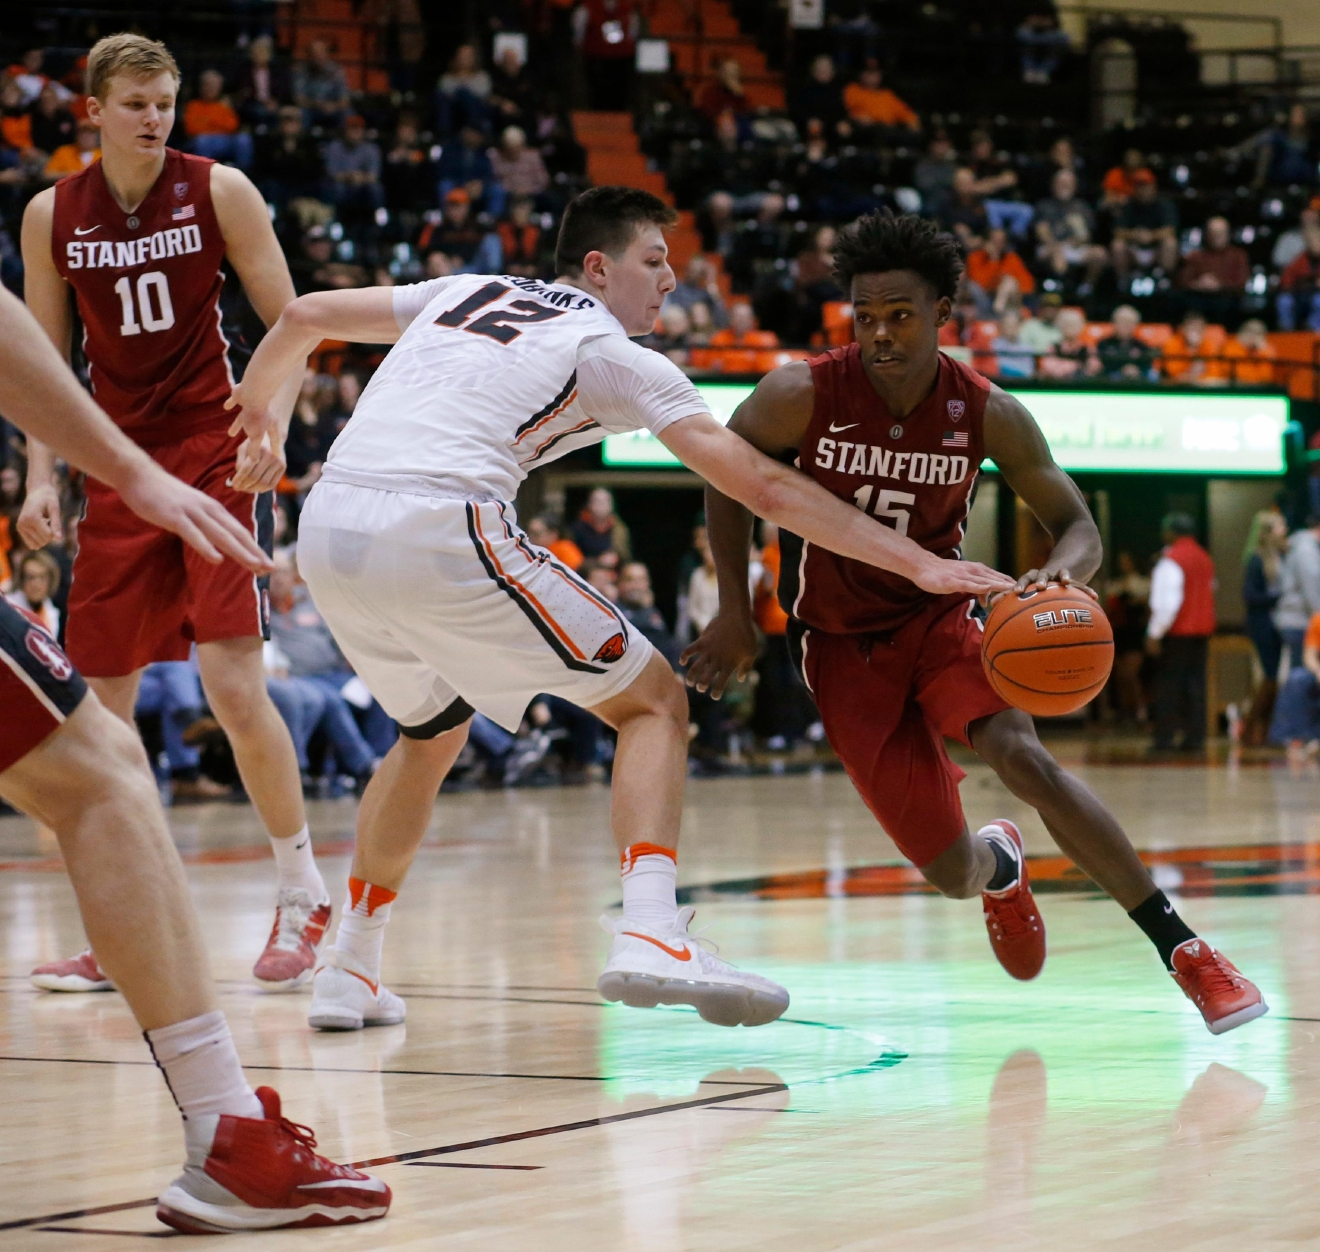 Stanford's Marcus Allen (15) gets around the defense of Oregon State's Drew Eubanks (12) pduring the second half of an NCAA college basketball game in Corvallis, Ore., Thursday, Jan. 19, 2017. Stanford won 62-46. (AP Photo/Timothy J. Gonzalez)